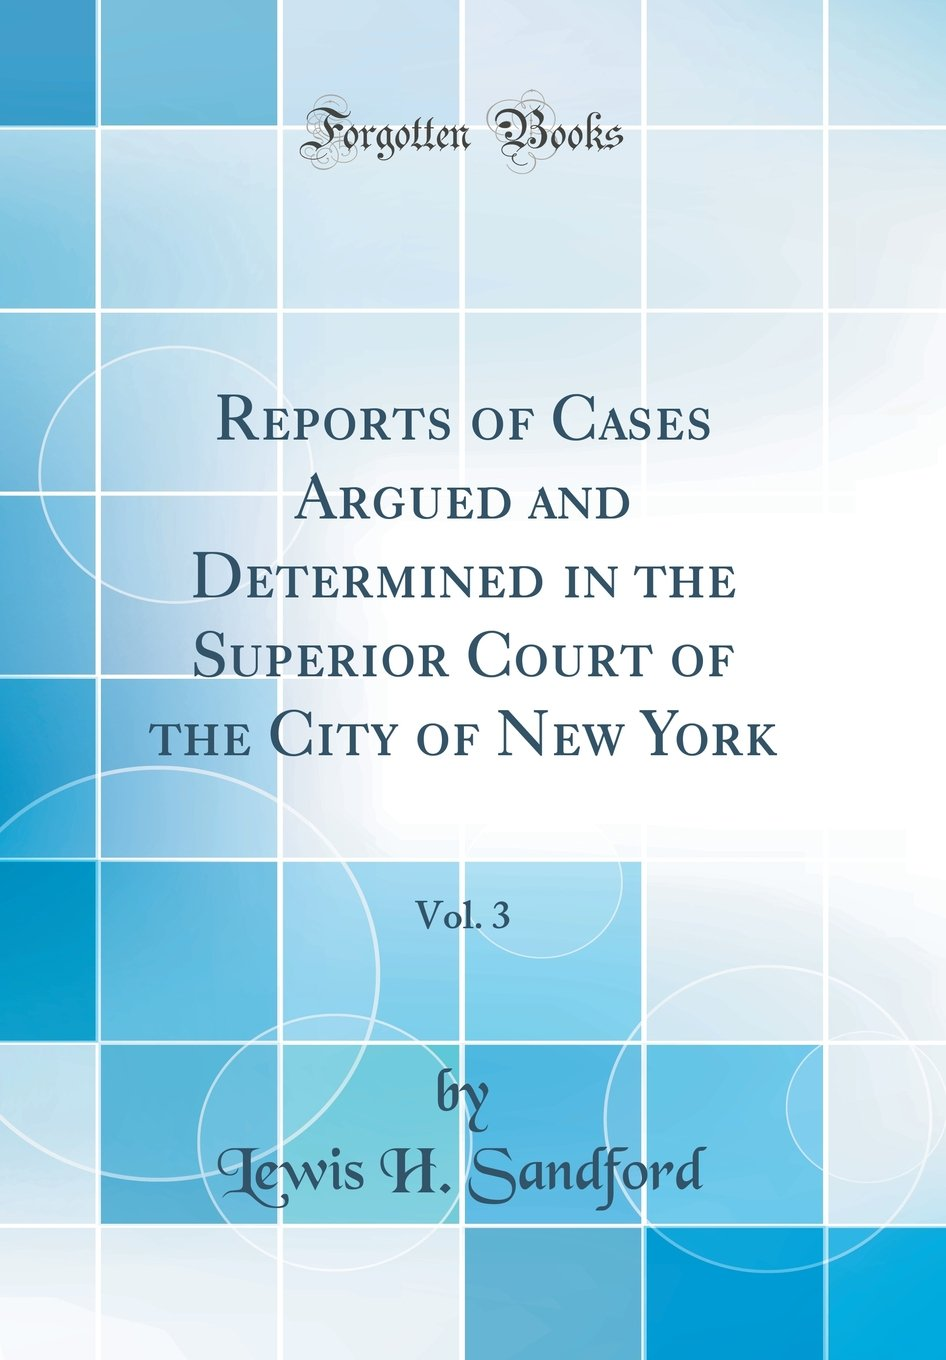 Download Reports of Cases Argued and Determined in the Superior Court of the City of New York, Vol. 3 (Classic Reprint) pdf epub